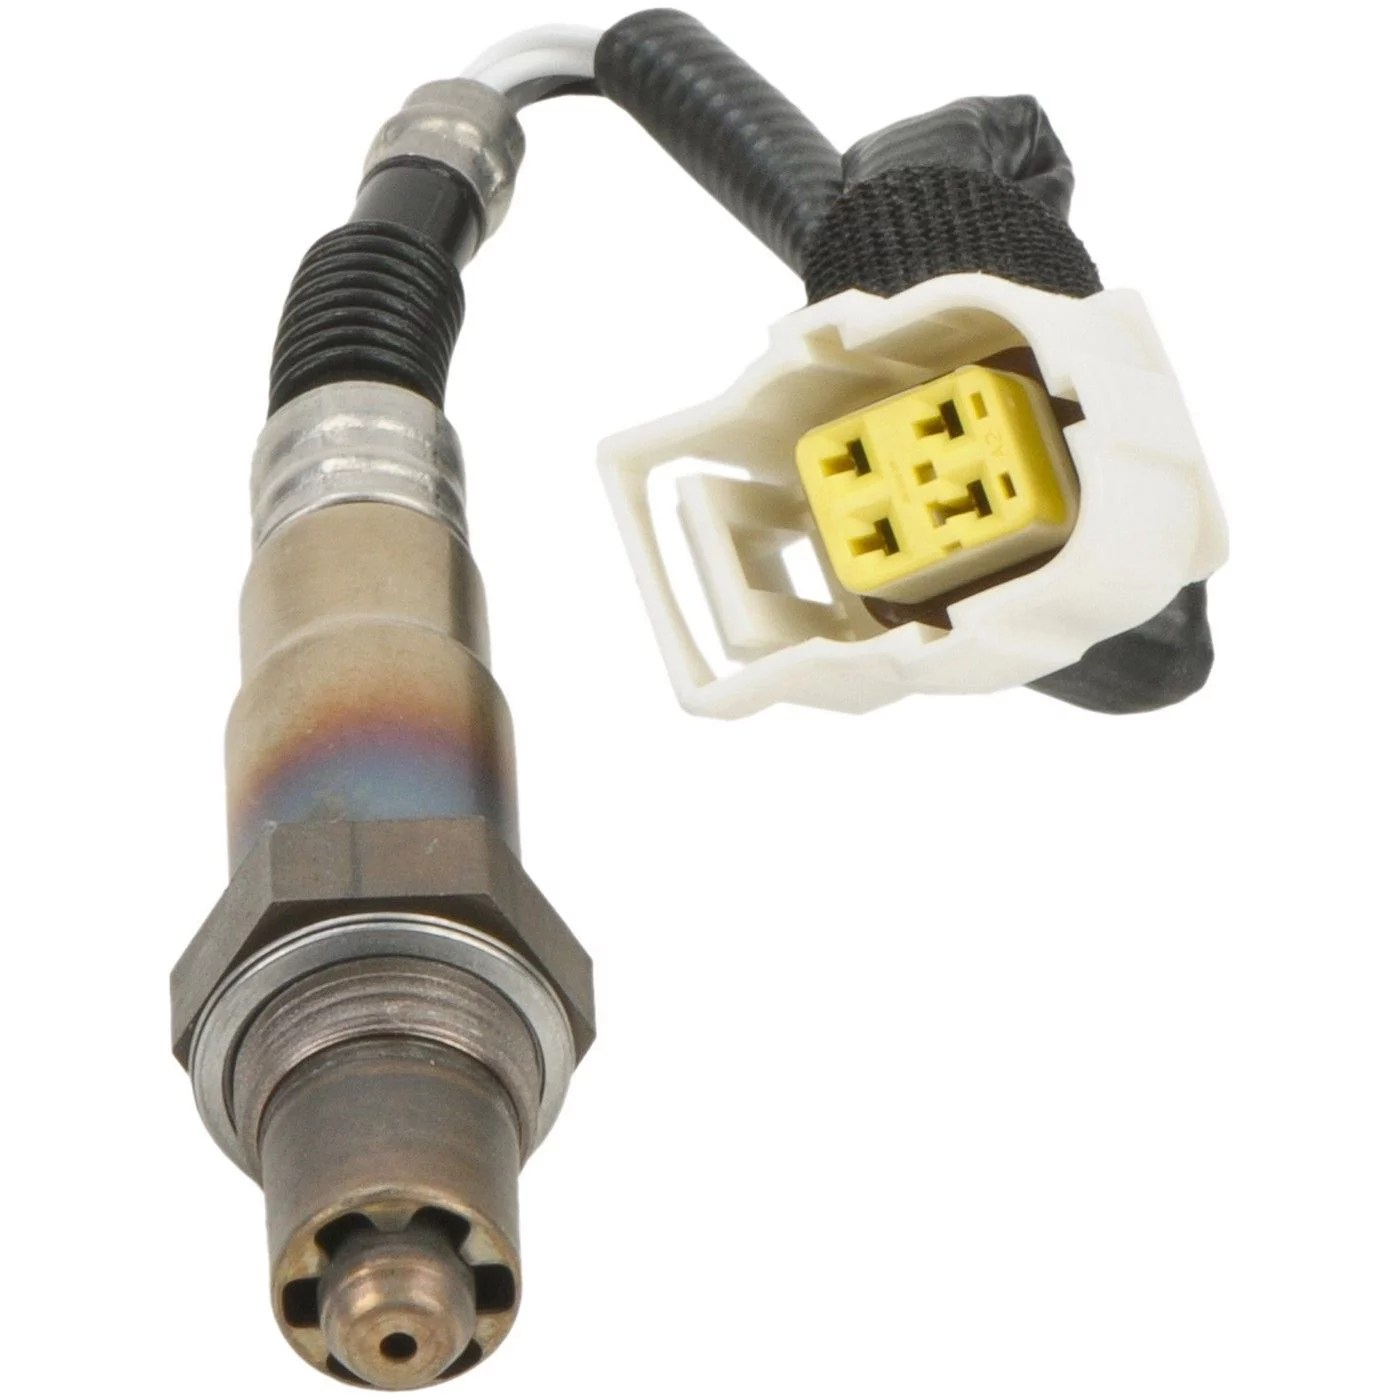 hight resolution of bosch sensors 15124 oxygen sensor oe replacement 13 5 inch length wiring harness female spade connector single sensor